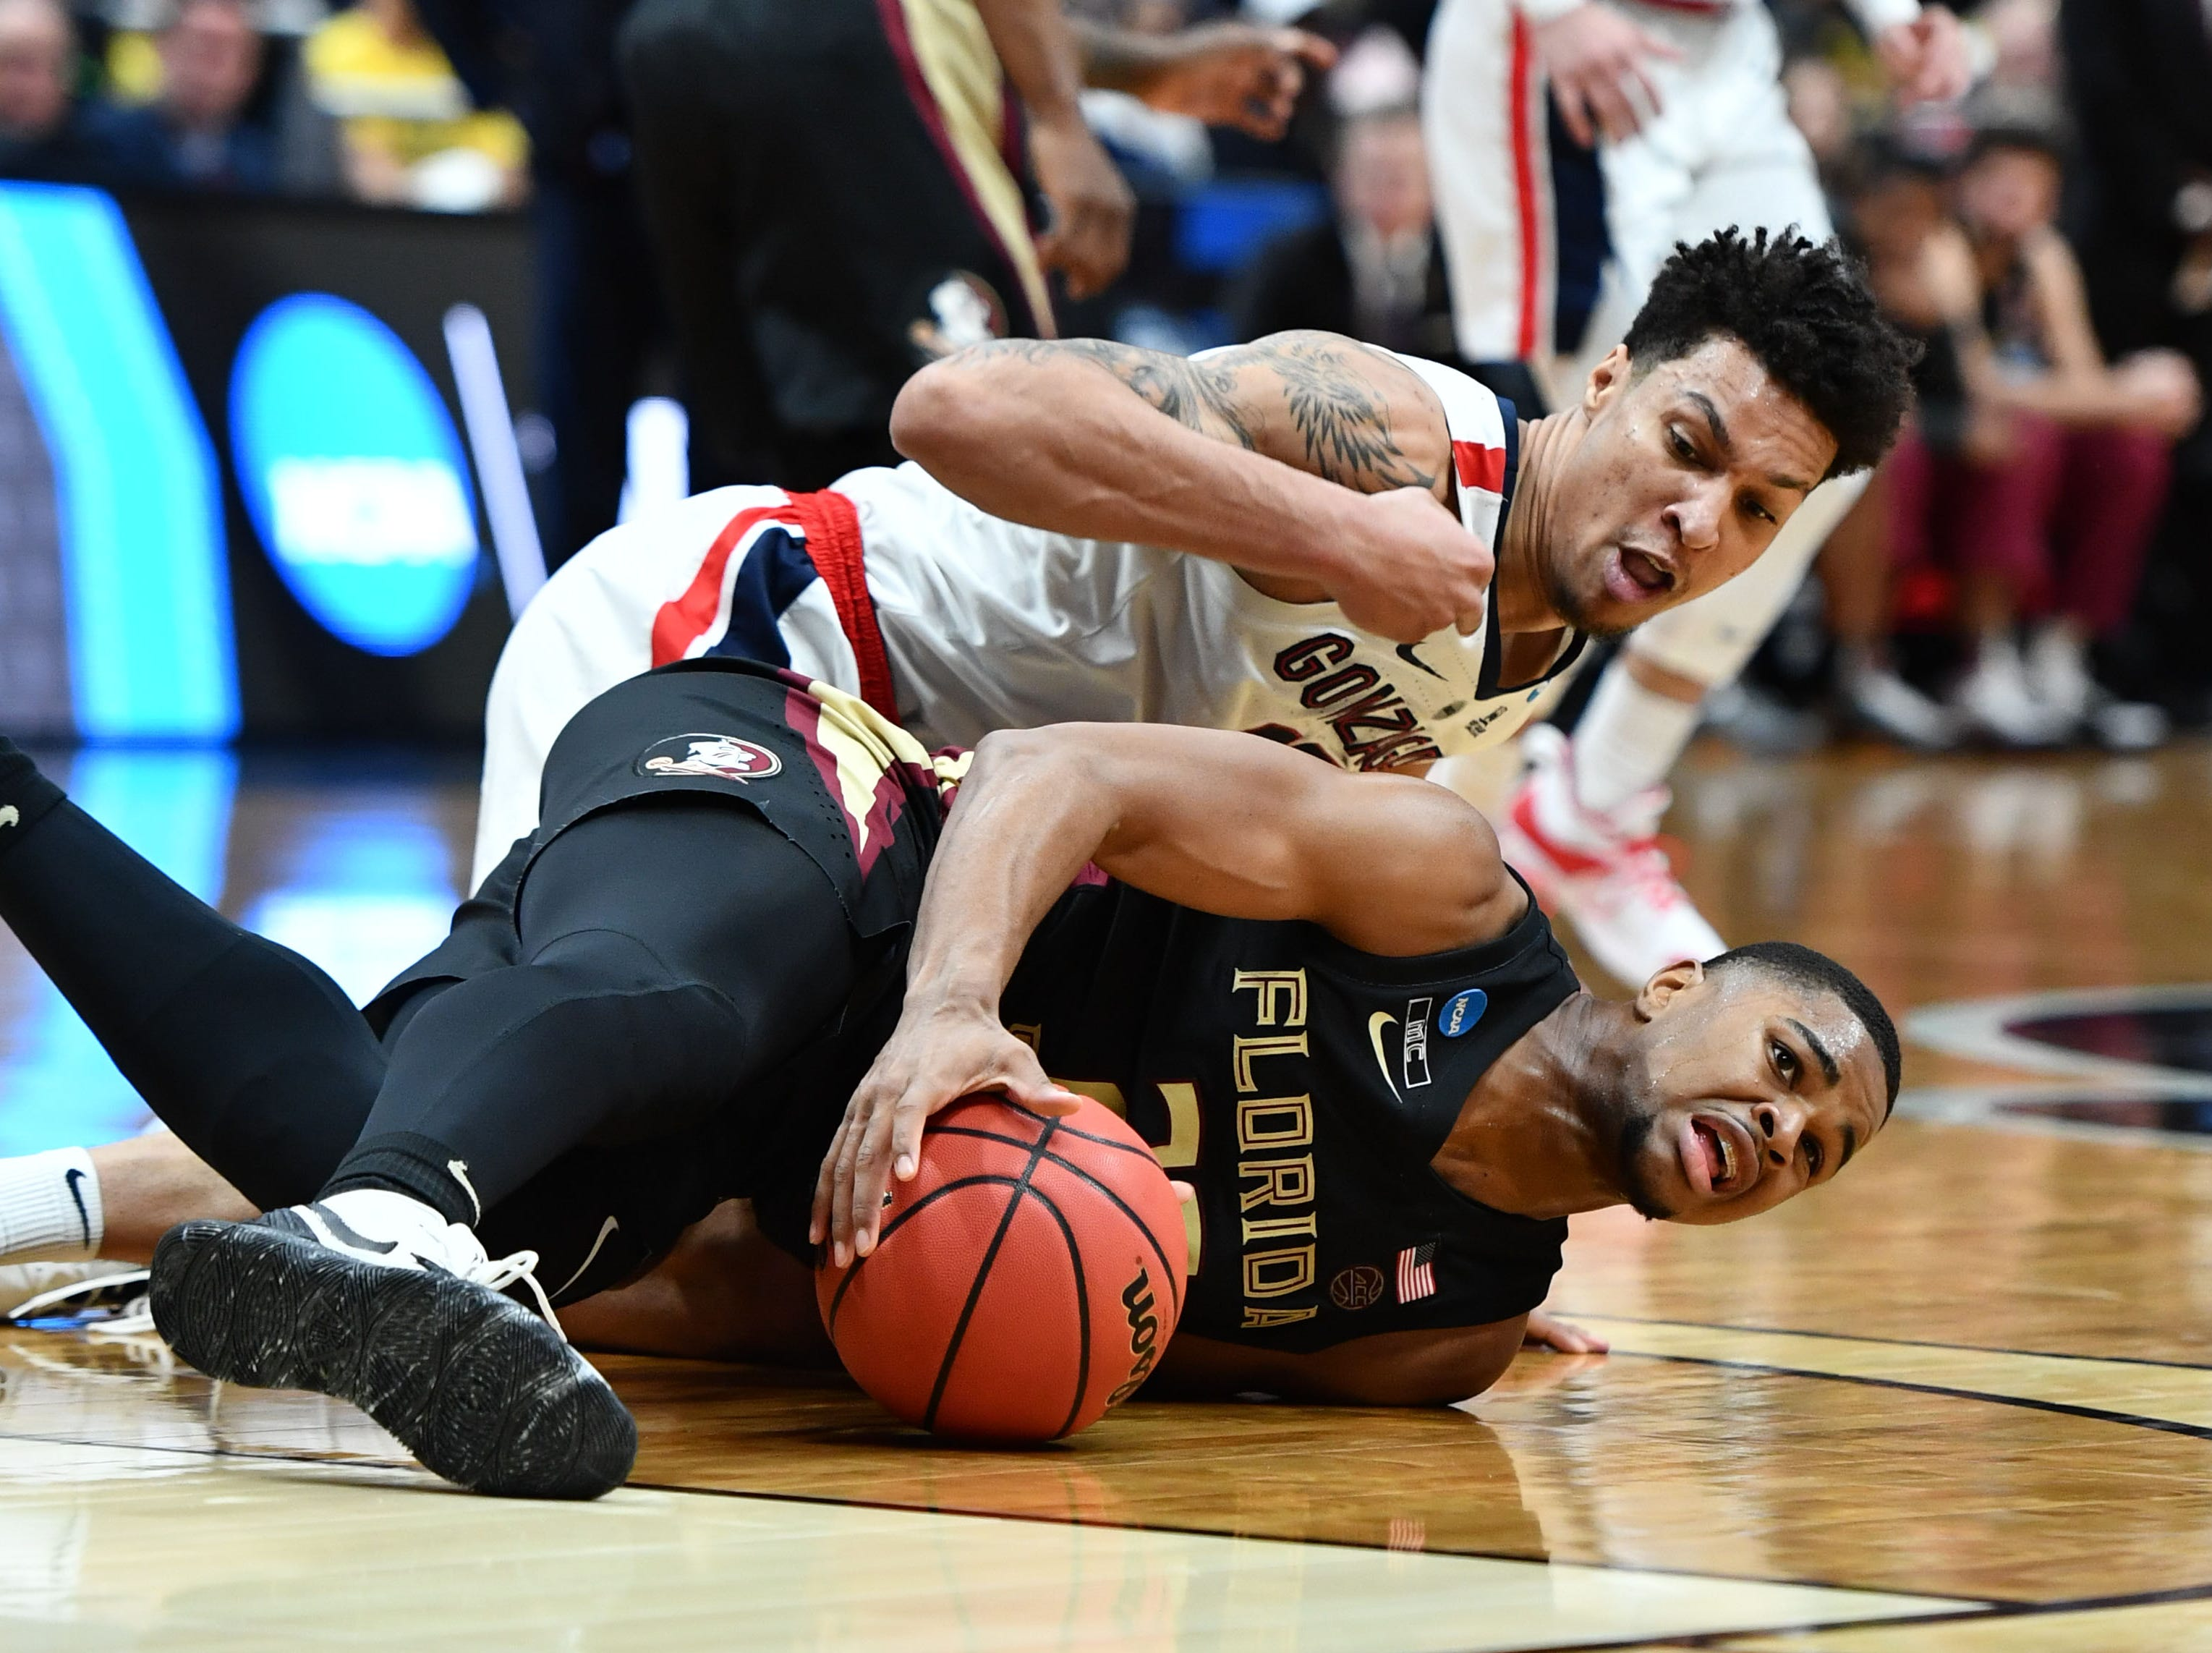 March 28, 2019; Anaheim, CA, USA; Florida State Seminoles guard M.J. Walker (23) keeps the ball away from Gonzaga Bulldogs forward Brandon Clarke (15) during the second half in the semifinals of the west regional of the 2019 NCAA Tournament at Honda Center. Mandatory Credit: Robert Hanashiro-USA TODAY Sports